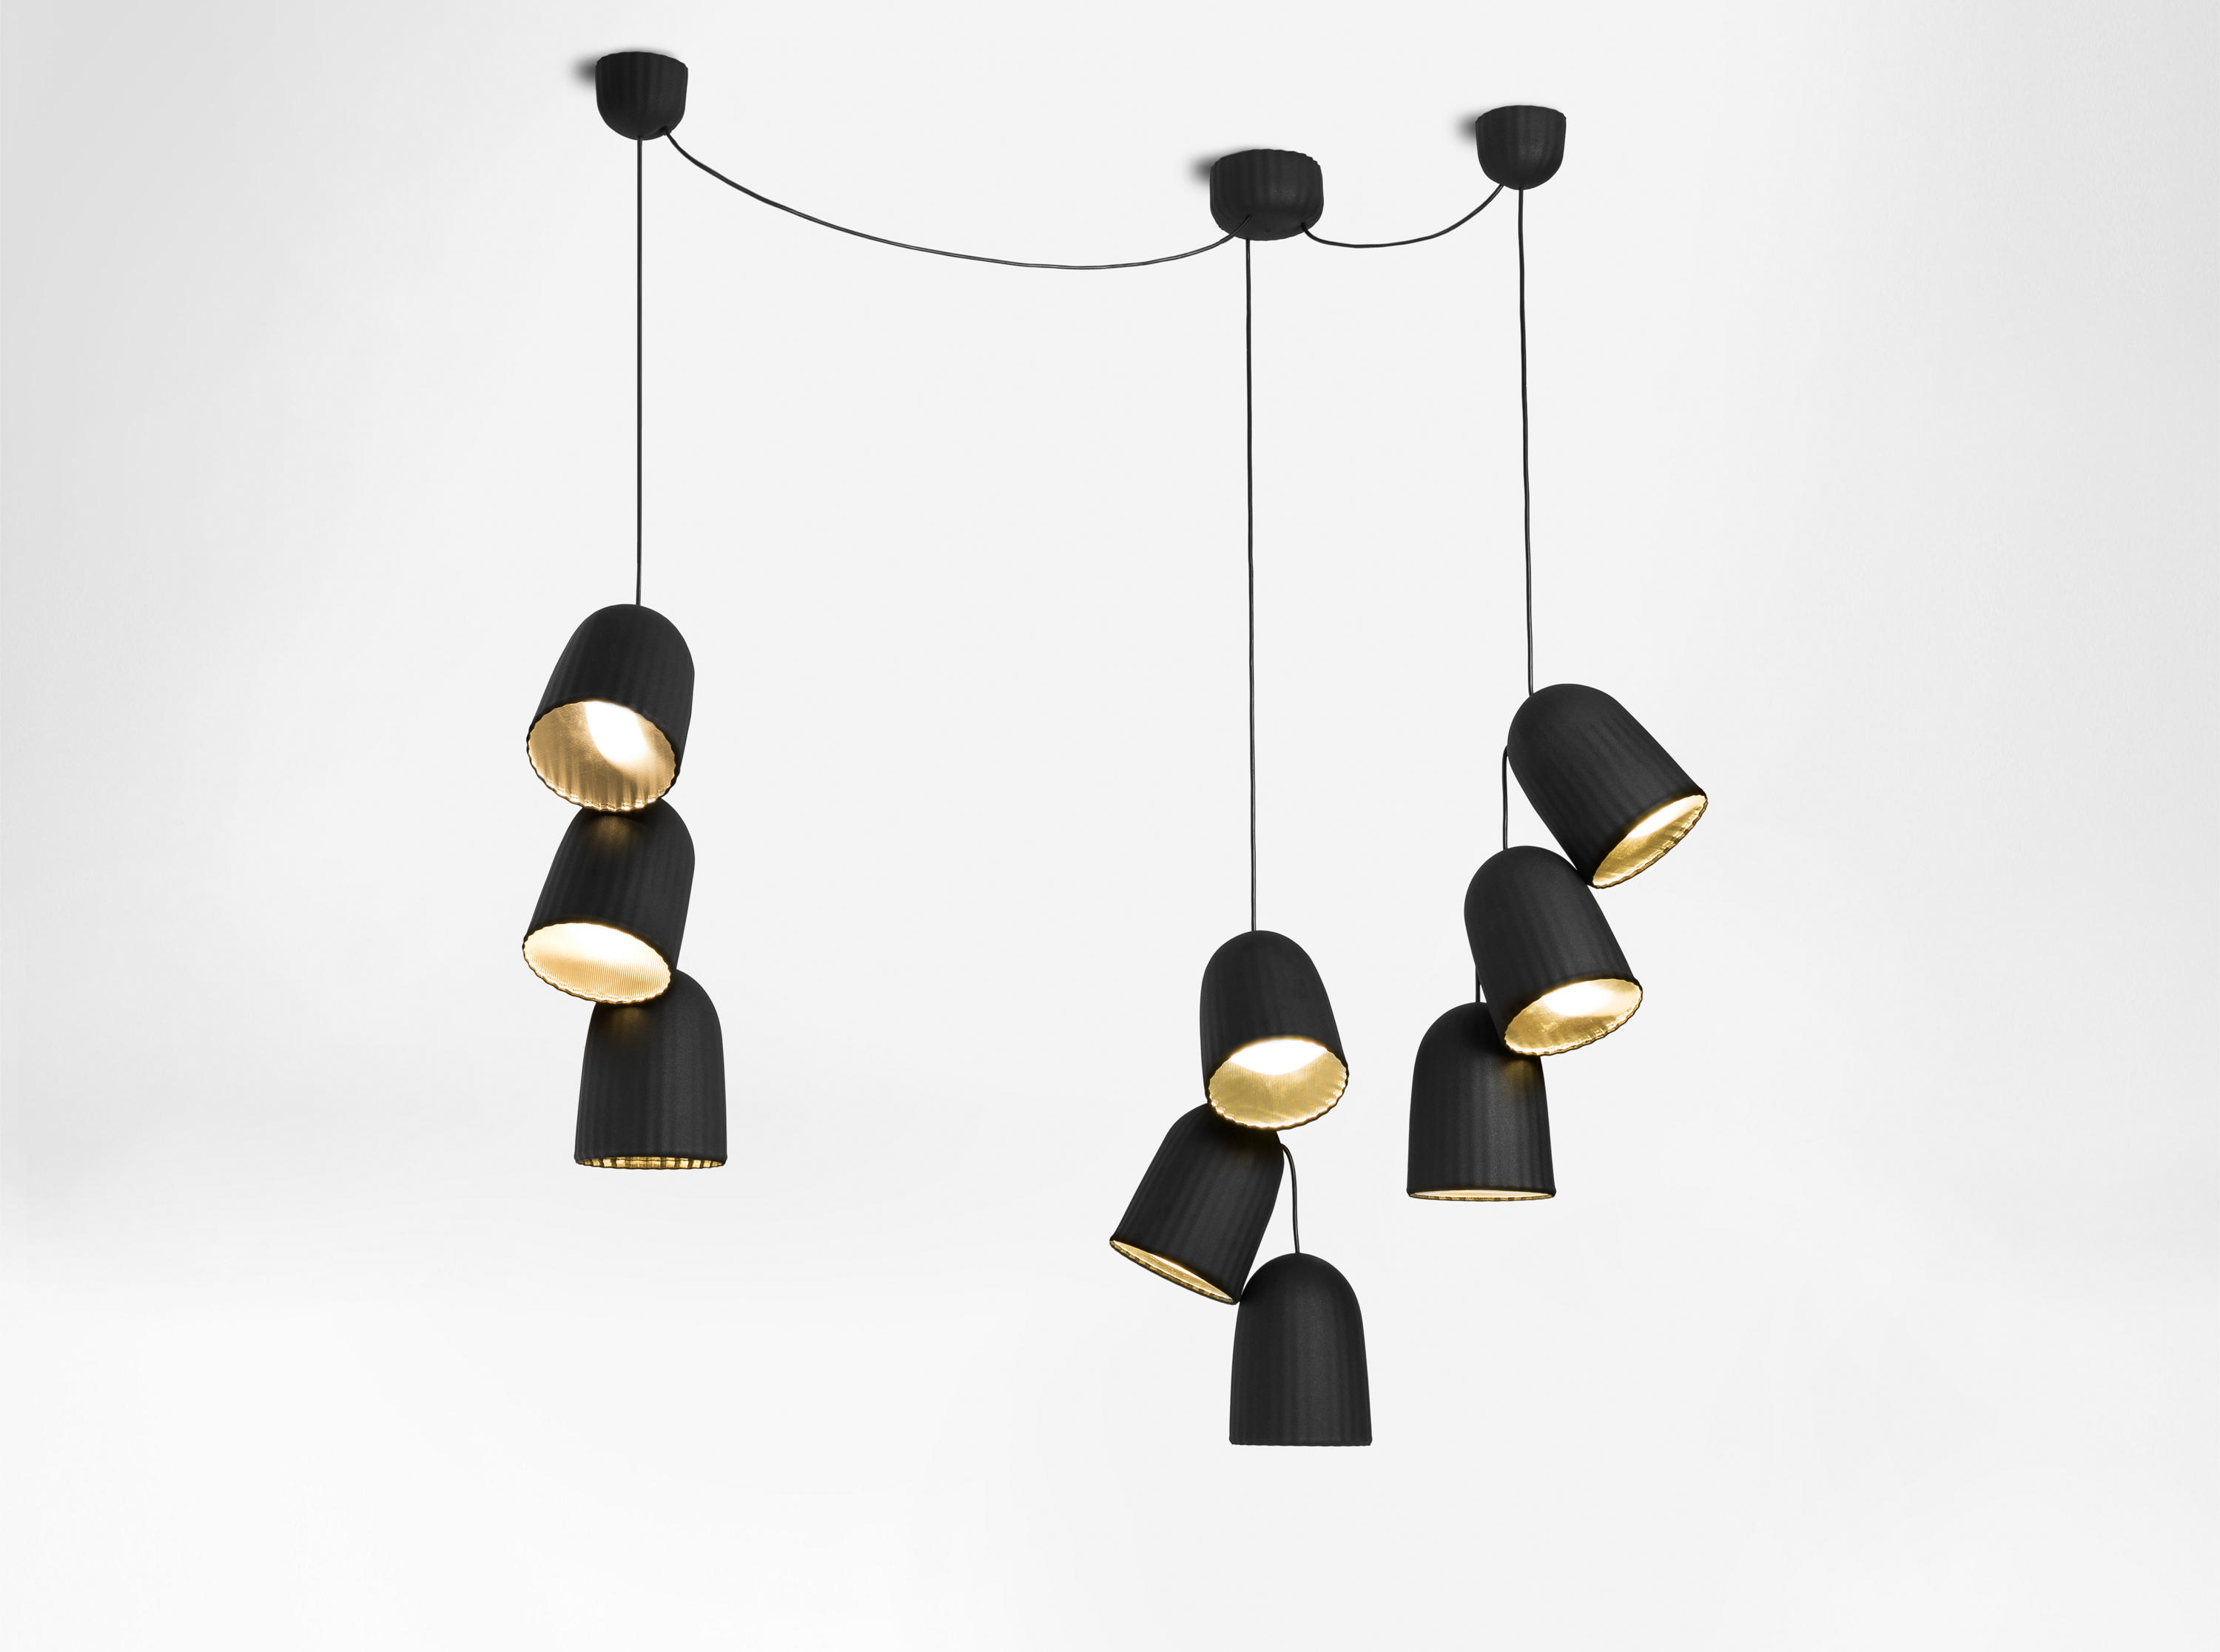 chains triple pendant lamp 3 units general lighting from petite friture architonic. Black Bedroom Furniture Sets. Home Design Ideas